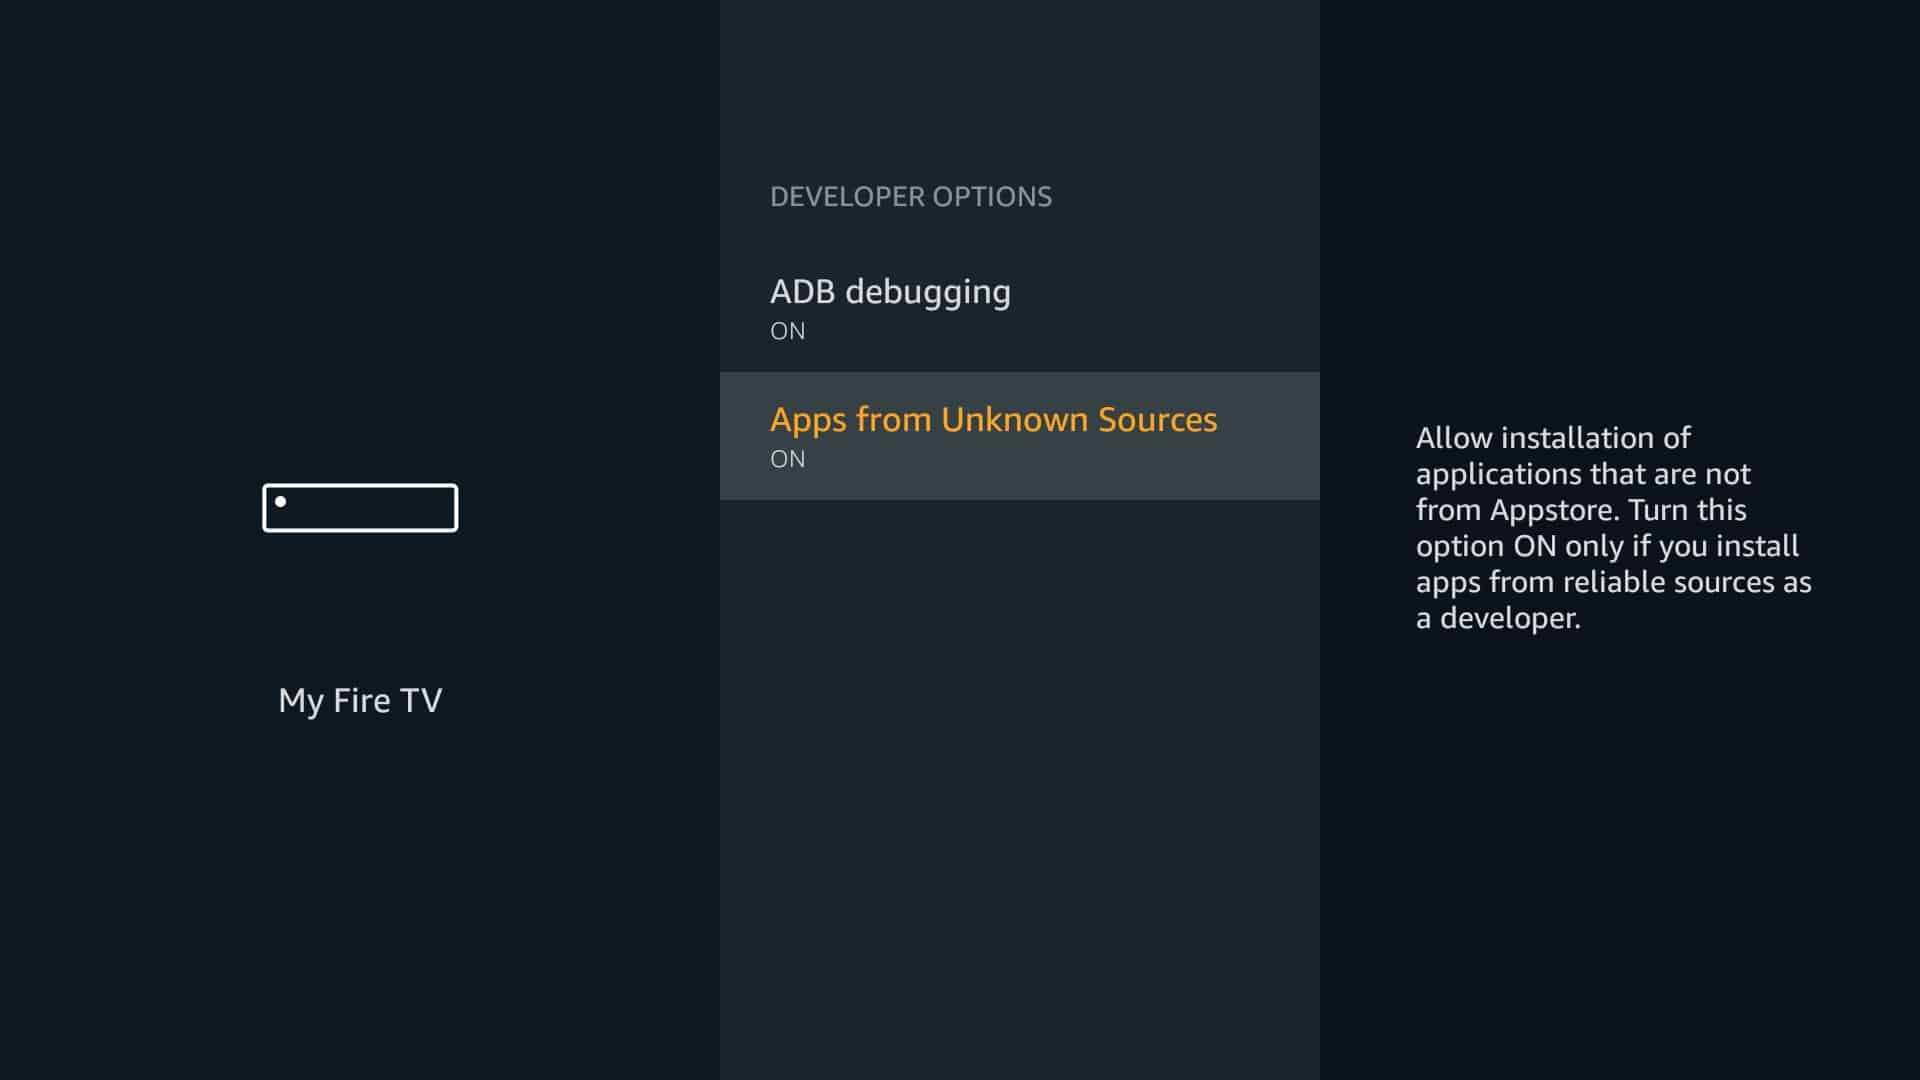 Set Apps from Unknown Sources to ON